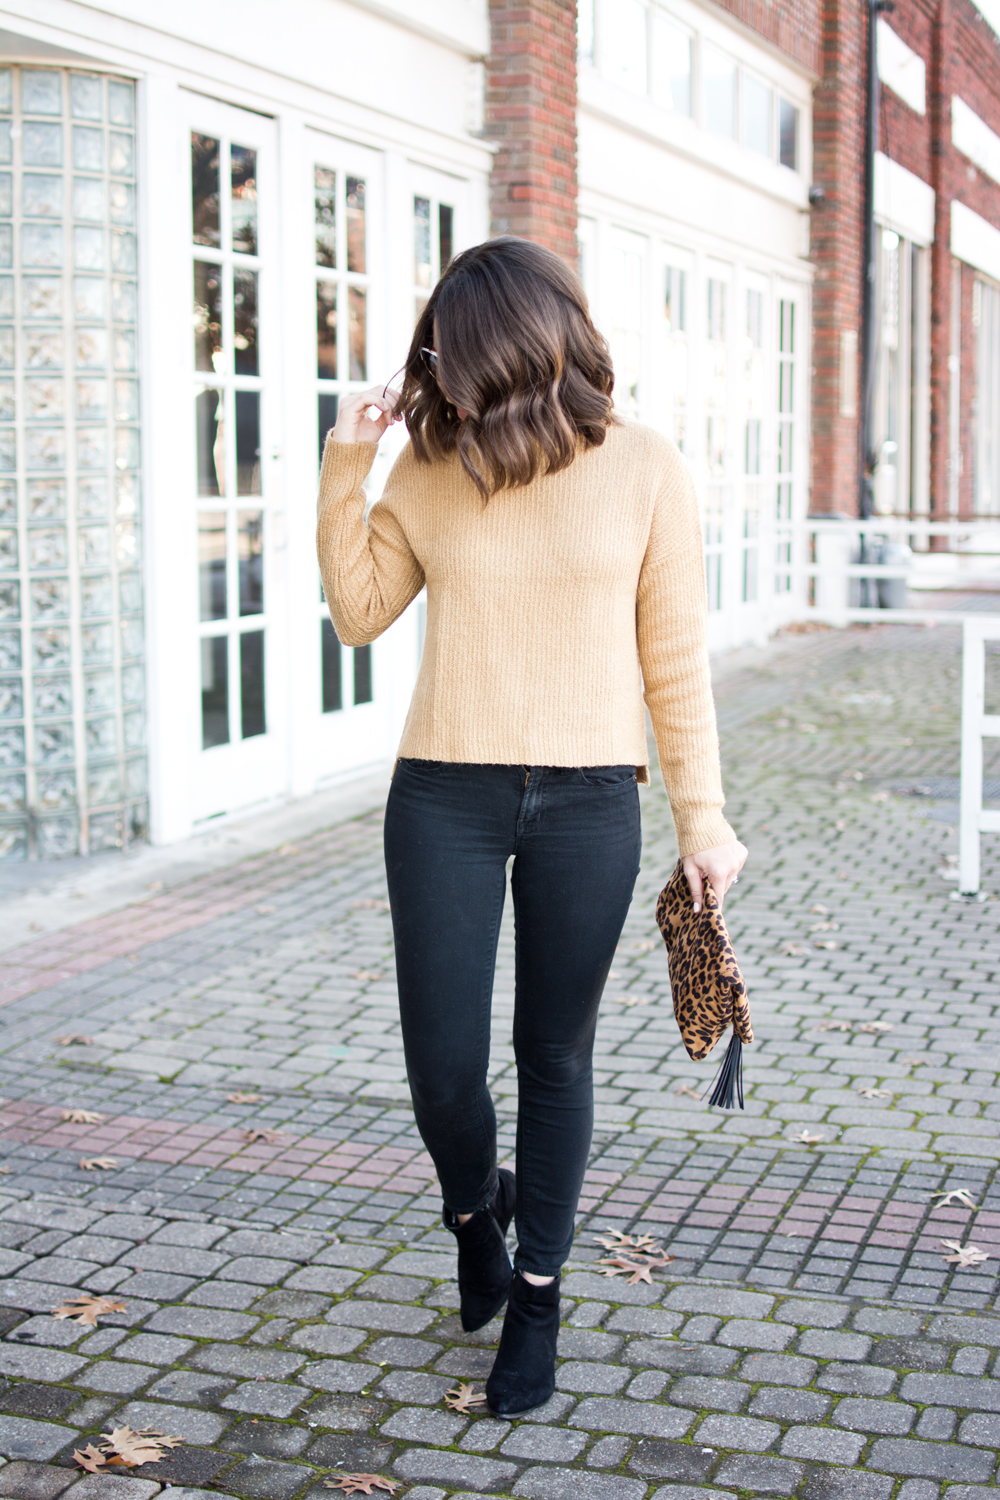 neutral outfit idea, funnel neck sweater, mock neck sweater, winter blogger outfit, blogger outfit idea, outfit of the day, fall fashion, fall outfit idea, winter style, blogger style, leopard clutch, how to style a leopard clutch, how to style a mock neck sweater